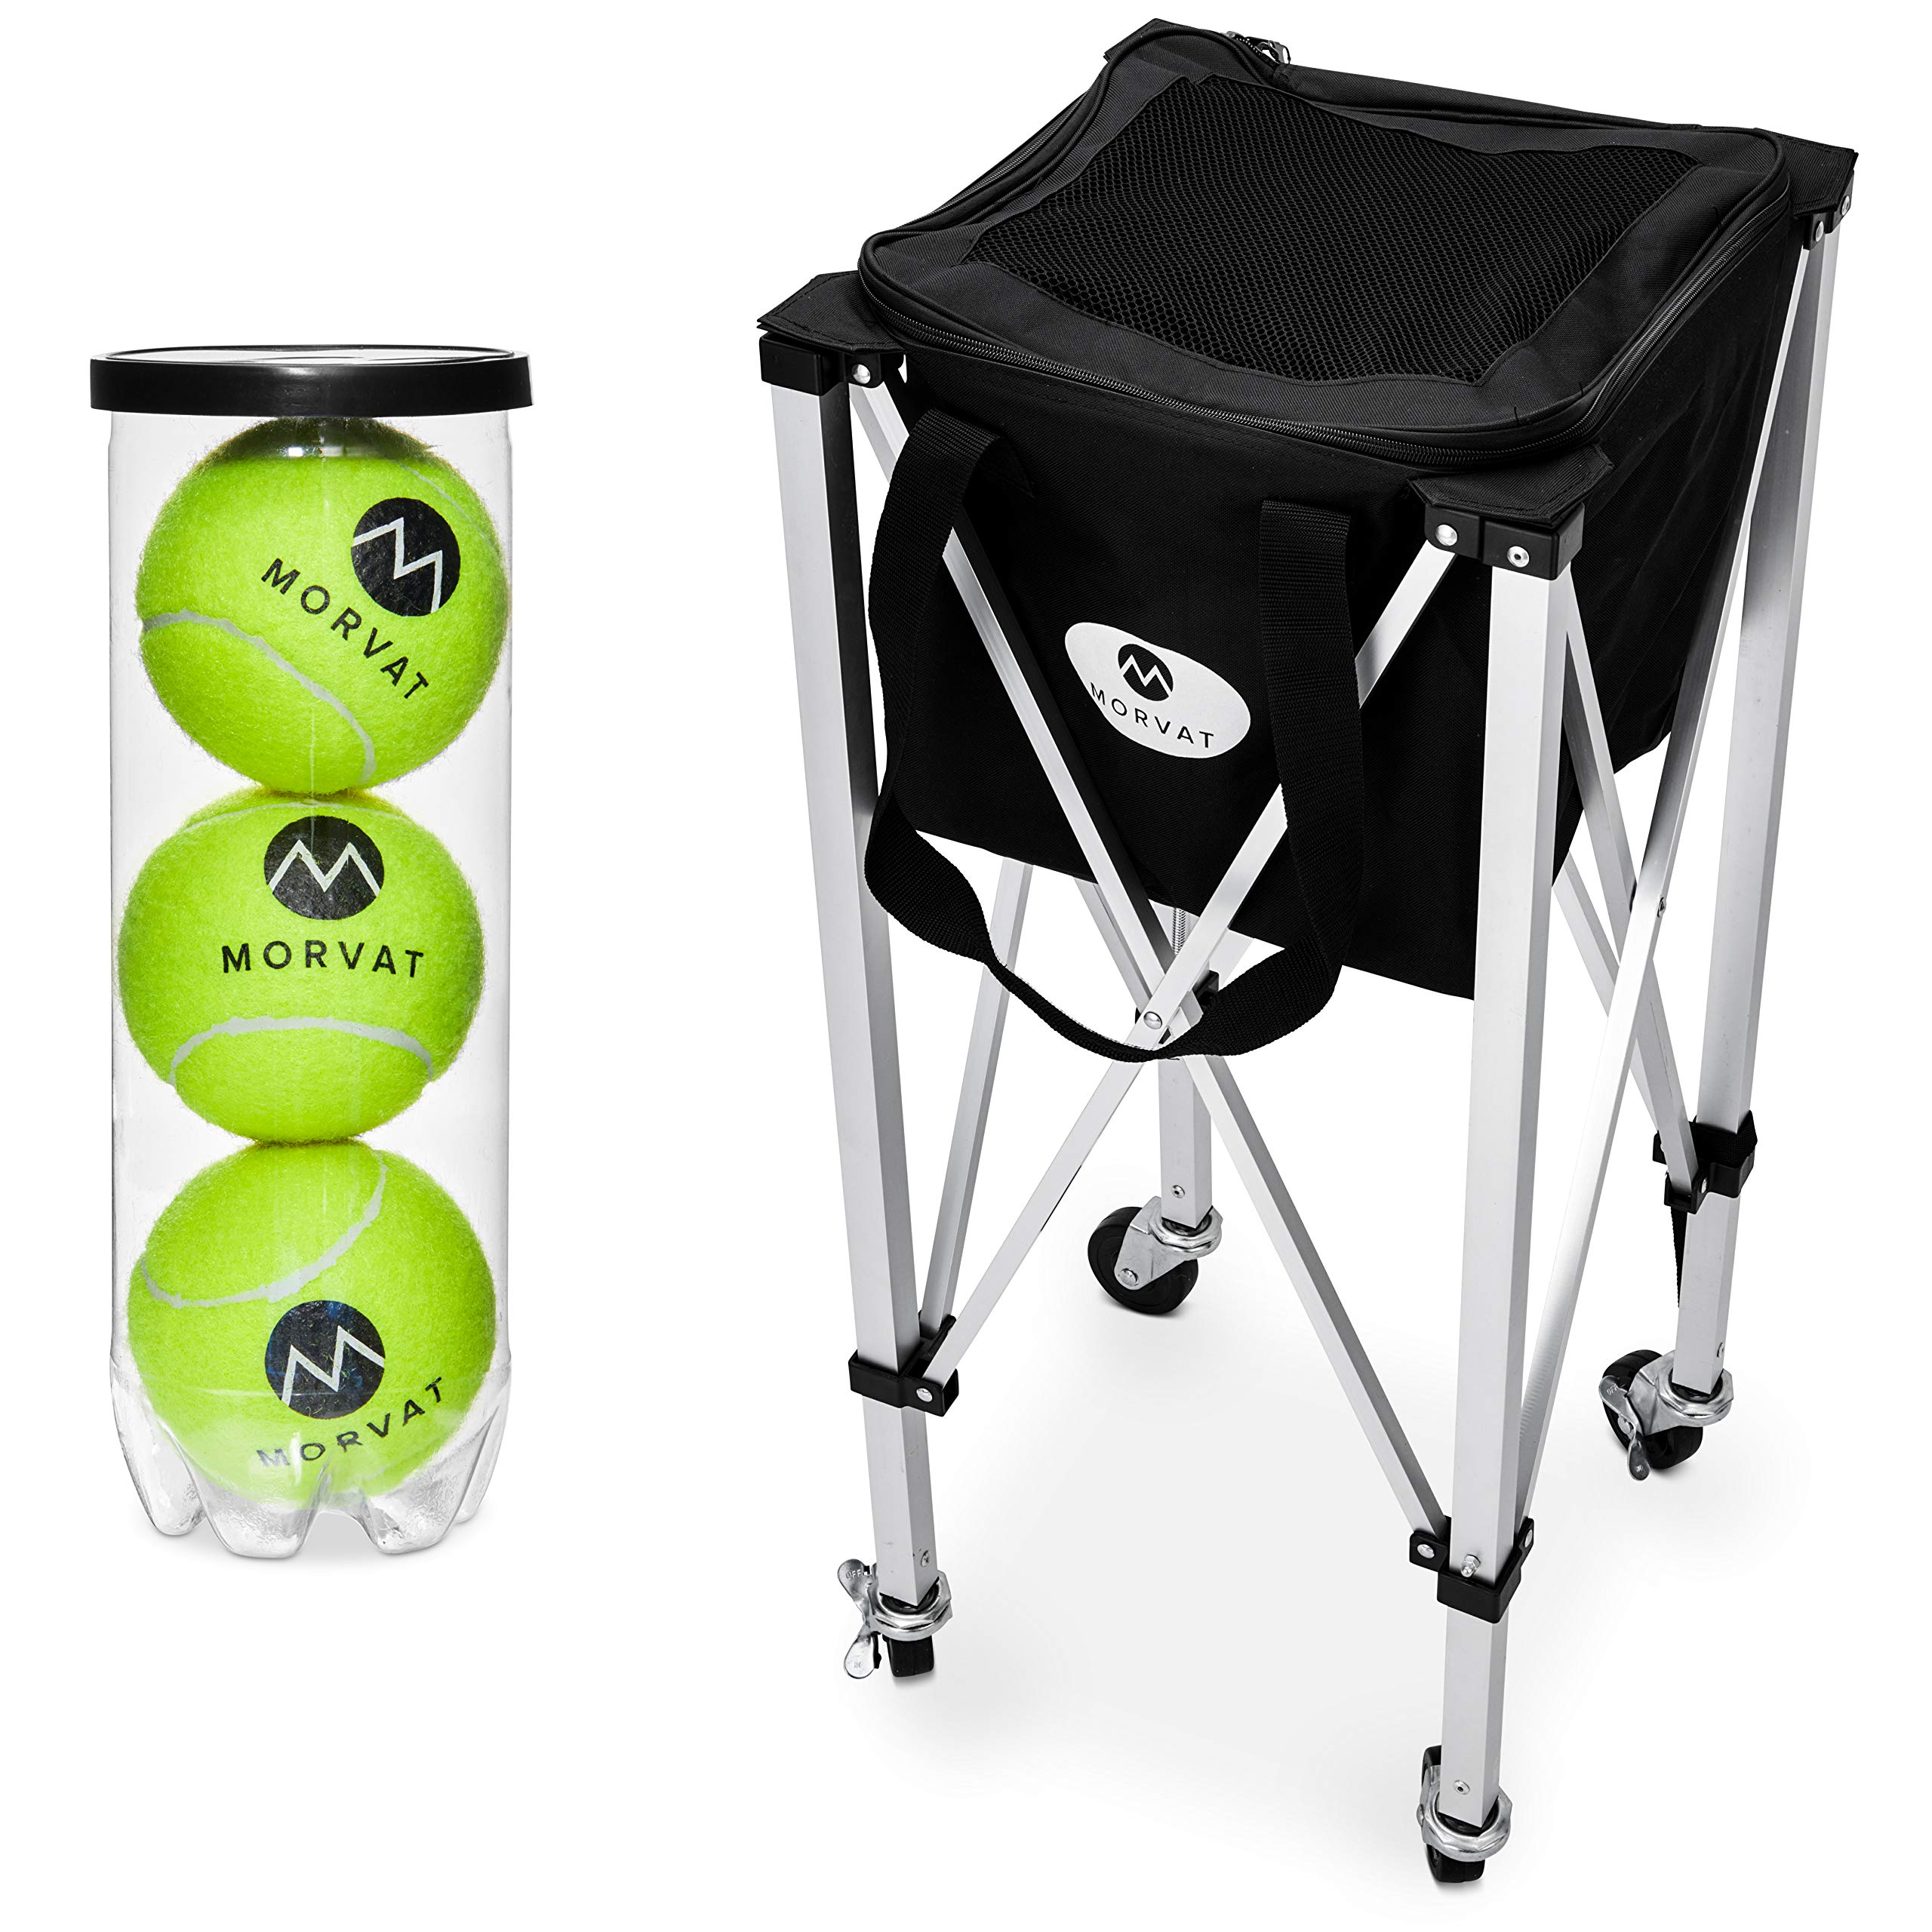 Morvat Tennis Ball Cart (Holds Up to 150 Balls), Tennis Ball Hopper, Tennis Ball Basket, Tennis Accessories, Tennis Gift, Lightweight, Portable, Includes Carry Bag